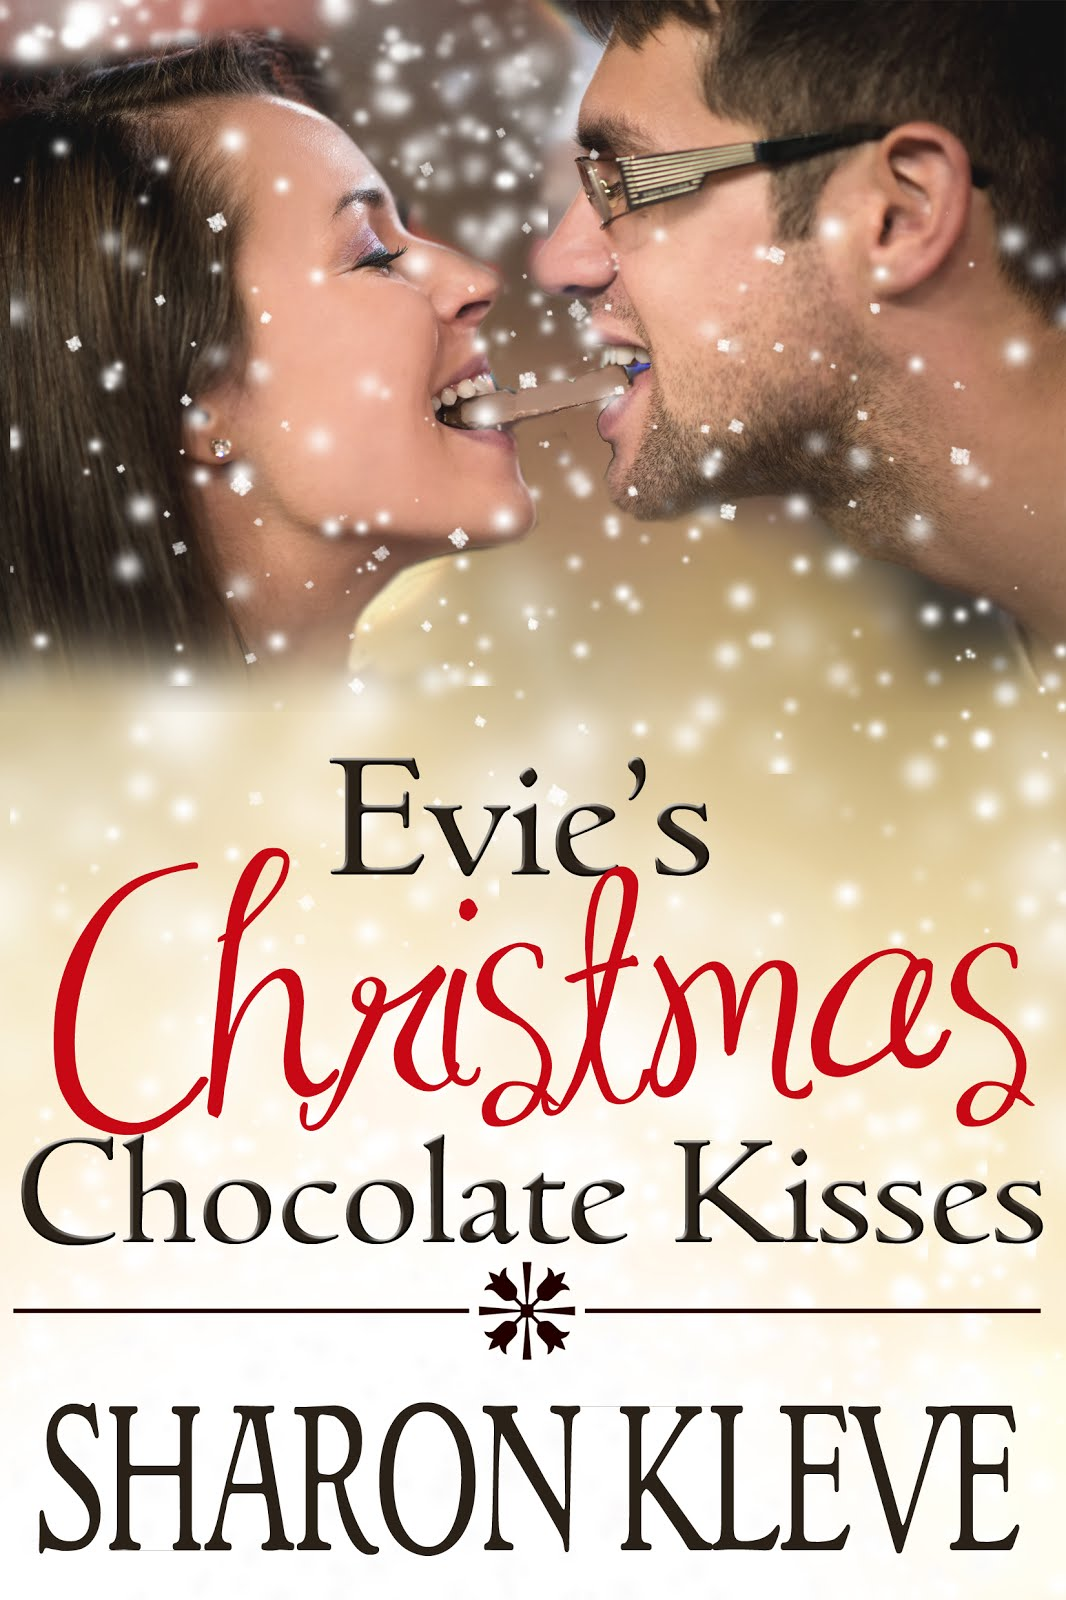 Evie's Christmas Chocolate Kisses